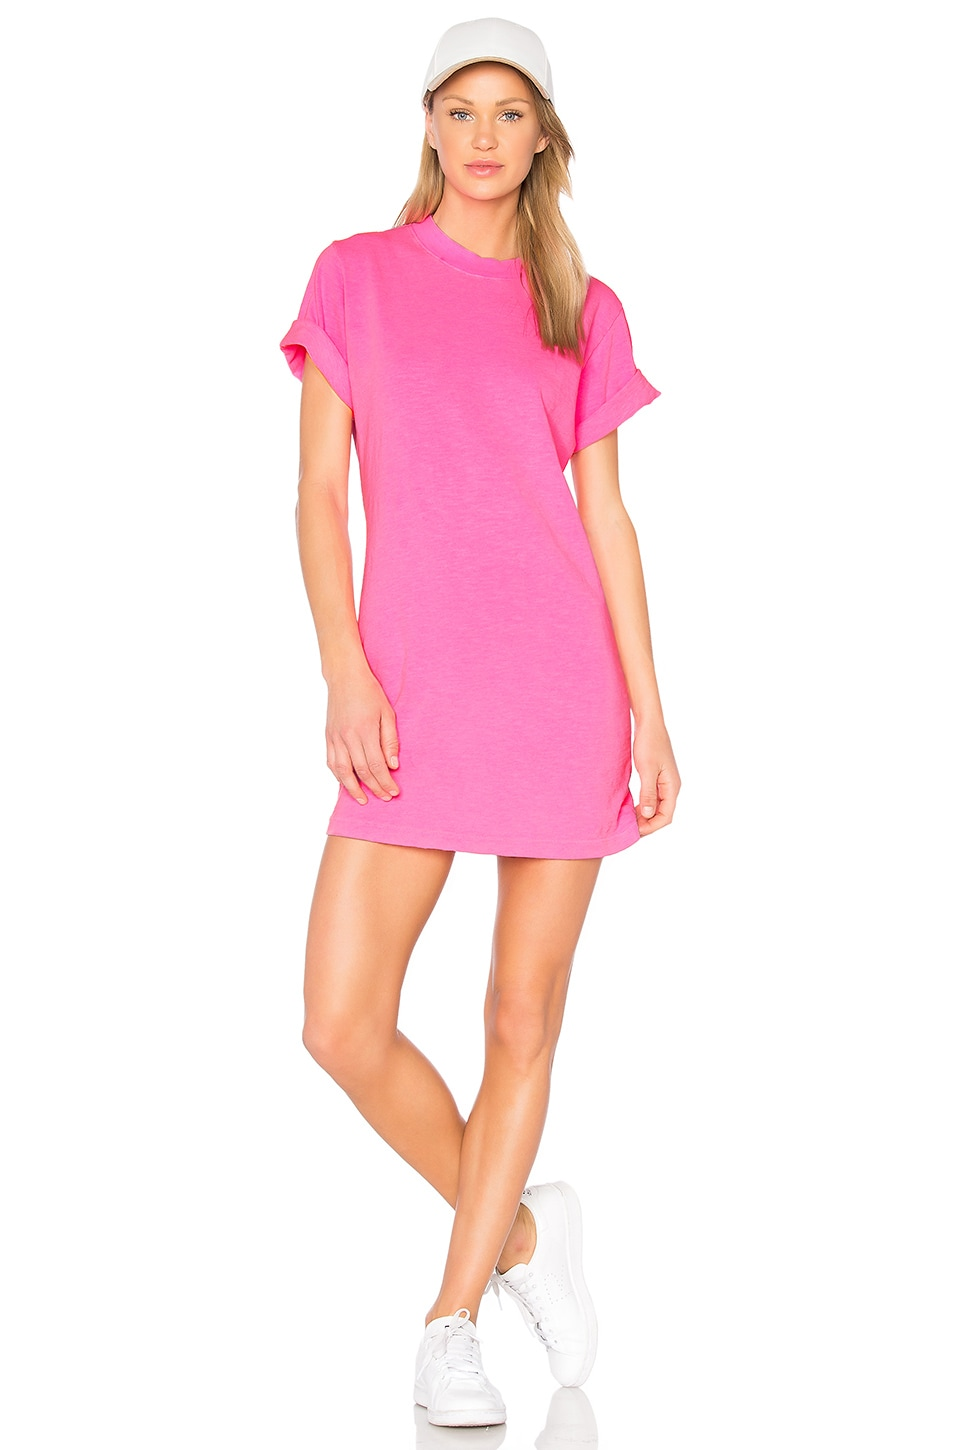 COTTON CITIZEN The Tokyo Mini Dress in Pink